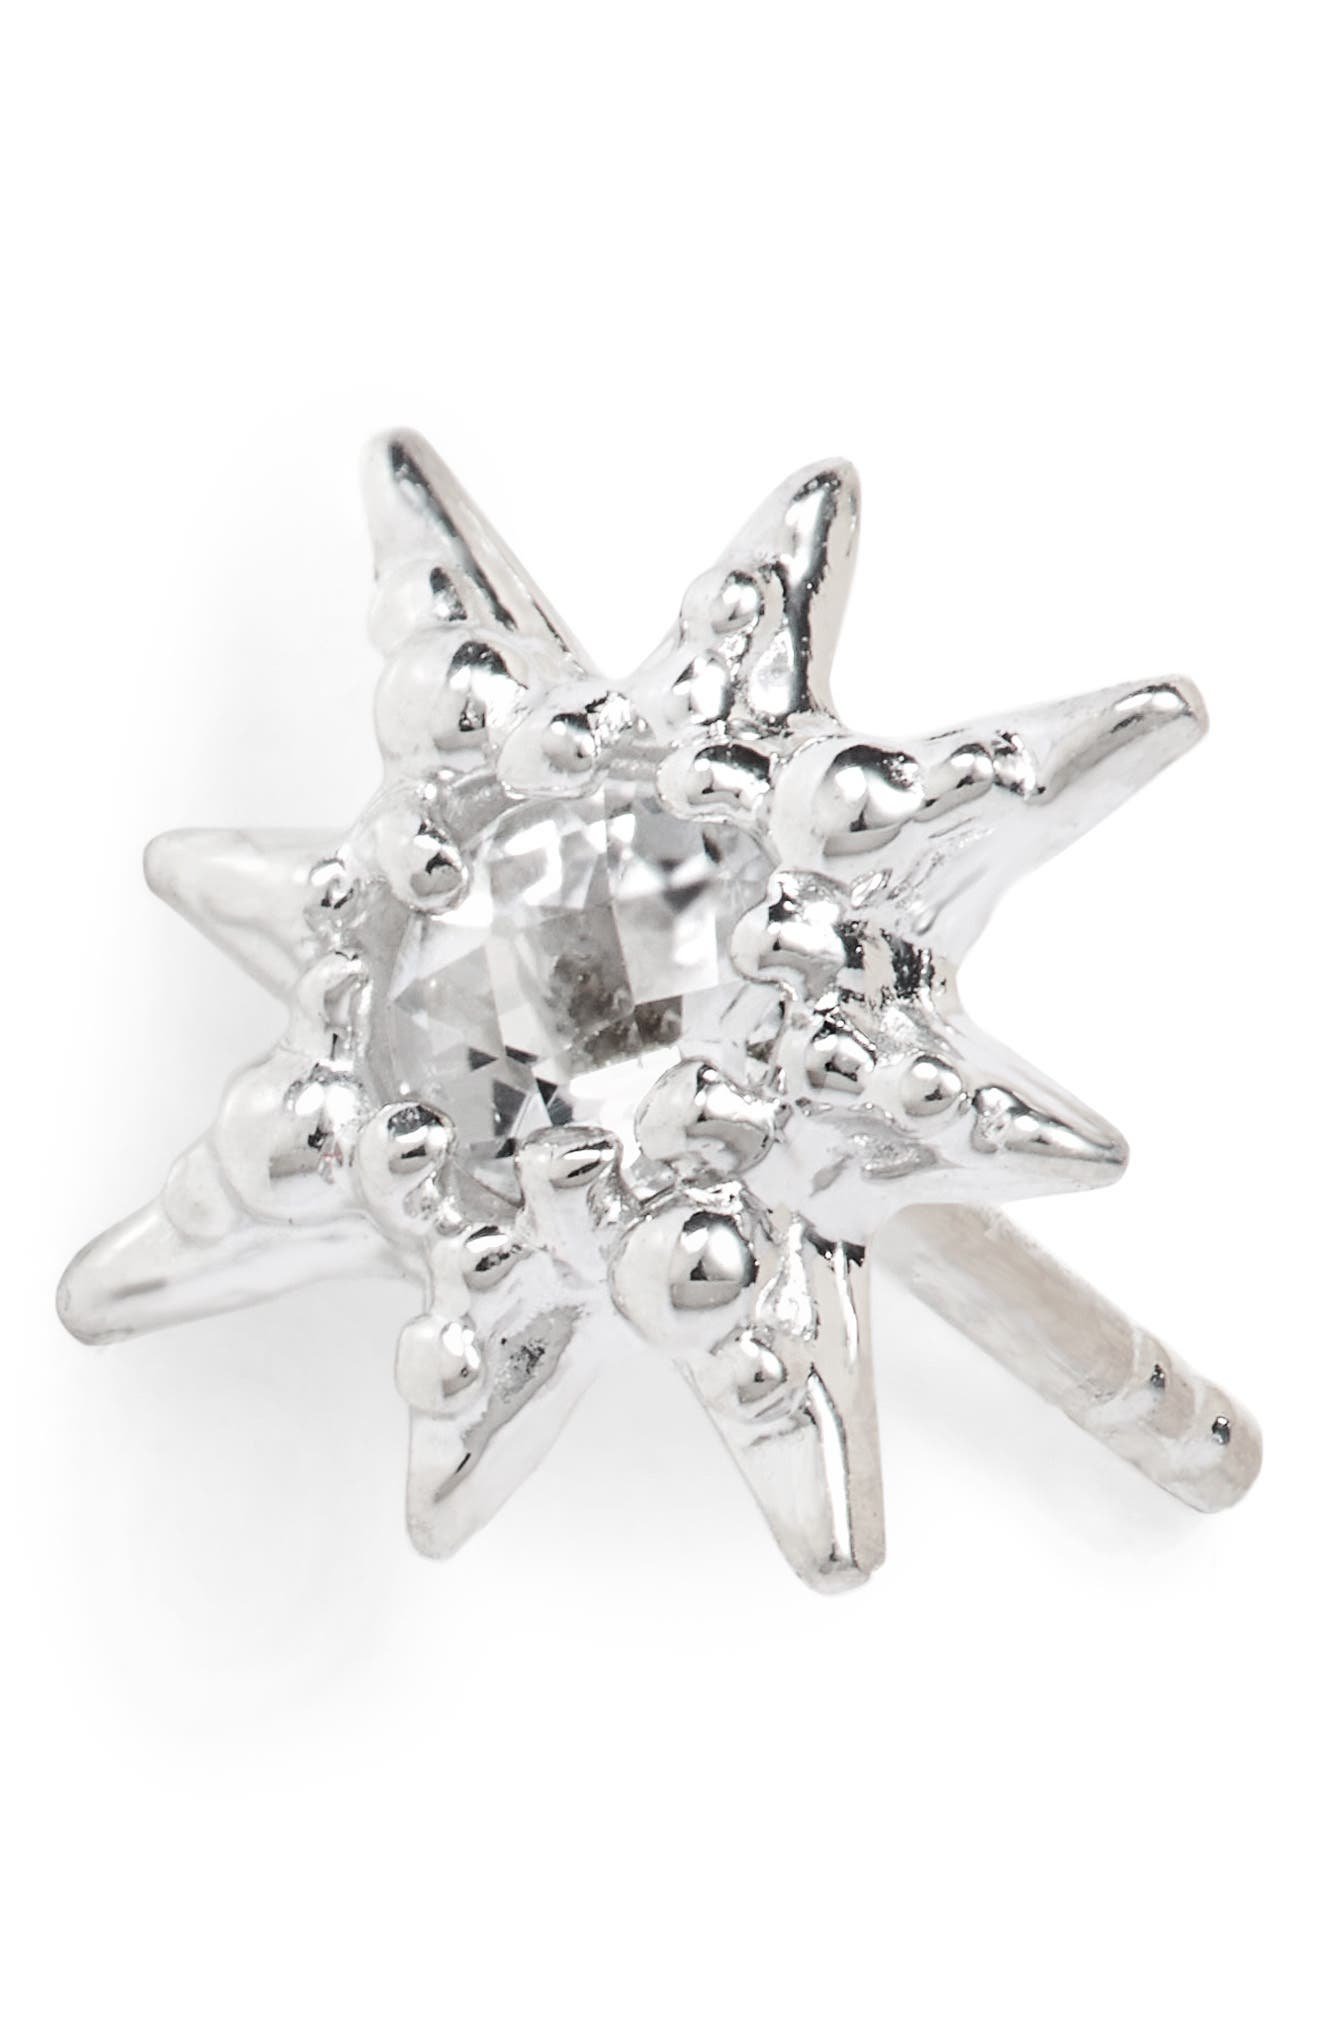 Micro Aztec Starburst Earrings,                             Alternate thumbnail 5, color,                             SILVER